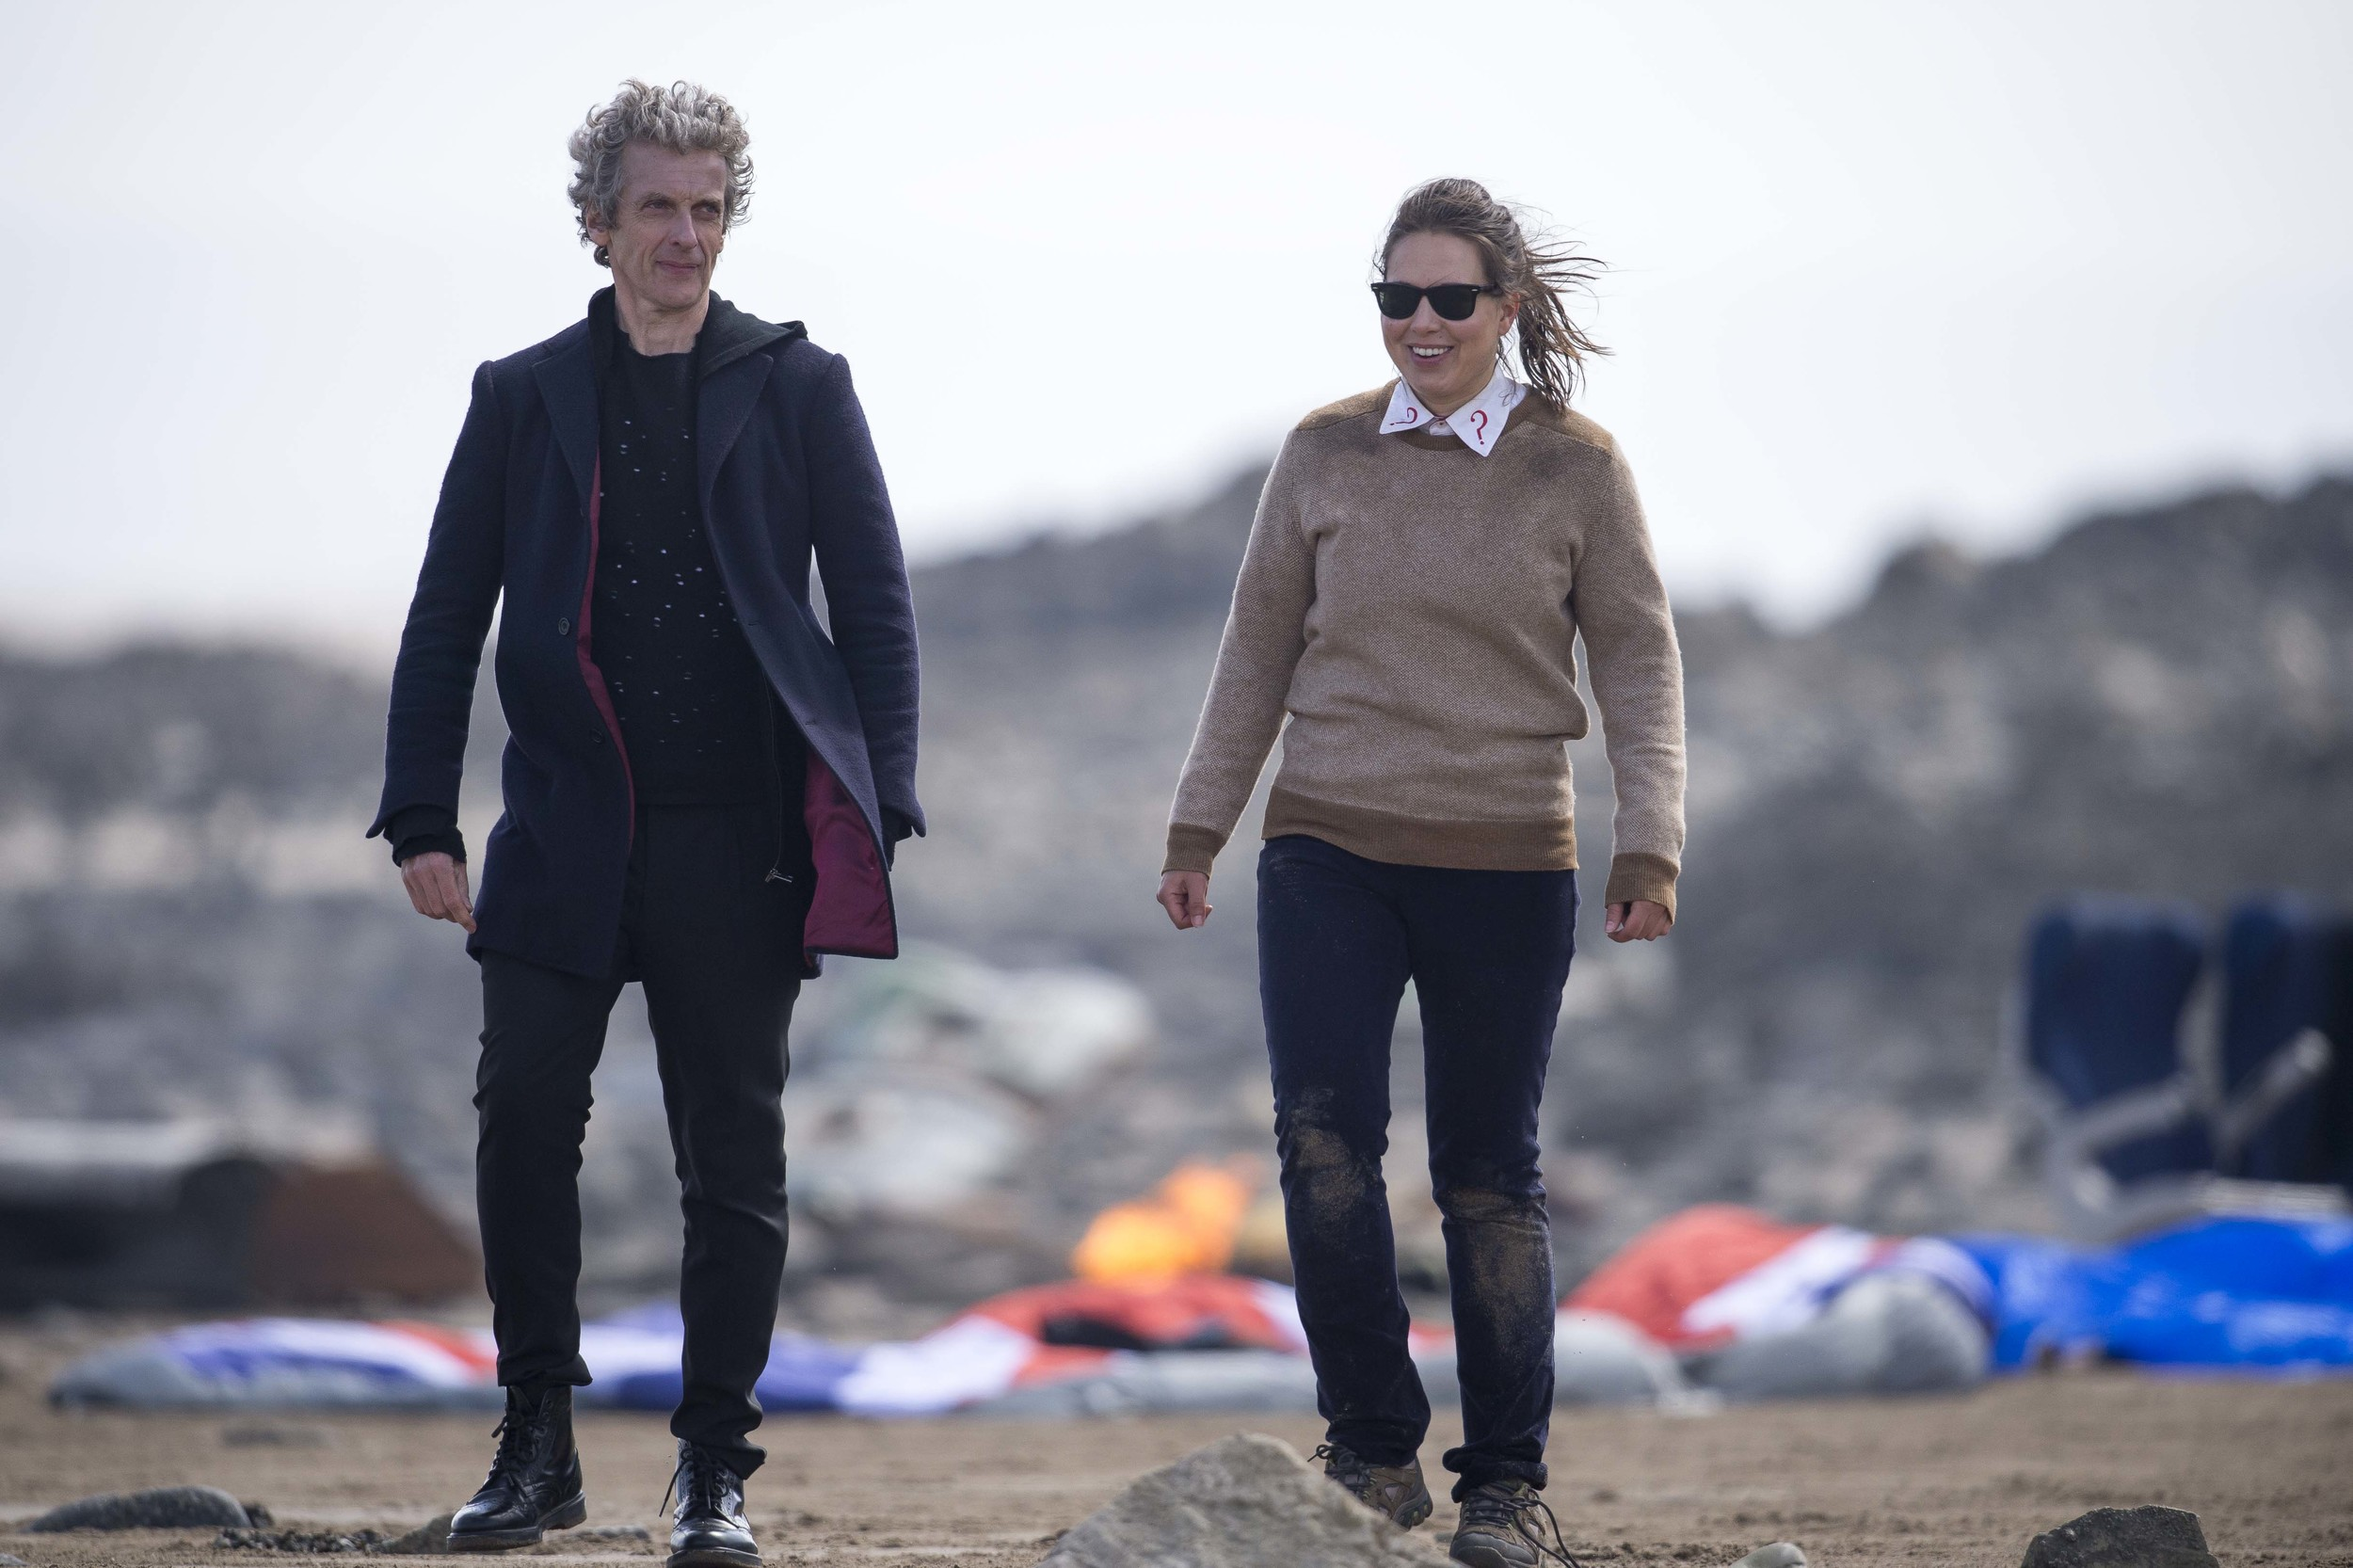 BARRY, WALES - MAY 18: The Doctor Peter Capaldi is spotted with Ingrid Oliver during filming for the ninth series of BBC show Doctor Who at Barry beach on May 18, 2015 in Barry, Wales. An area on the beach had been set up to look as if a plane had crashed. (Photo by Matthew Horwood)